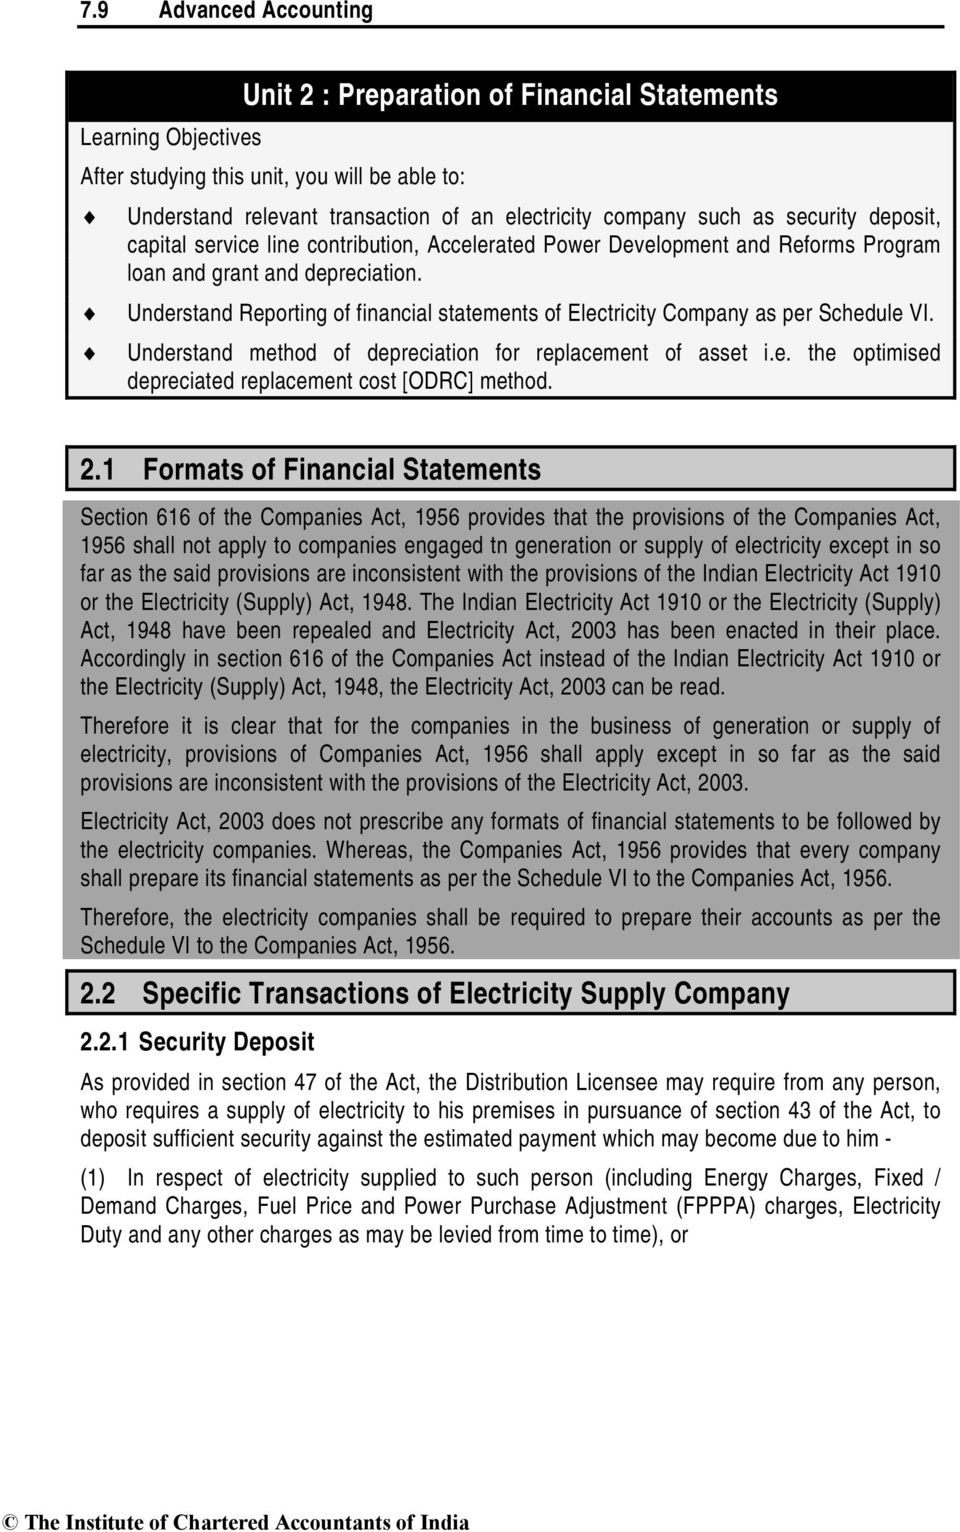 Understand Reporting of financial statements of Electricity Company as per Schedule VI. Understand method of depreciation for replacement of asset i.e. the optimised depreciated replacement cost [ODRC] method.